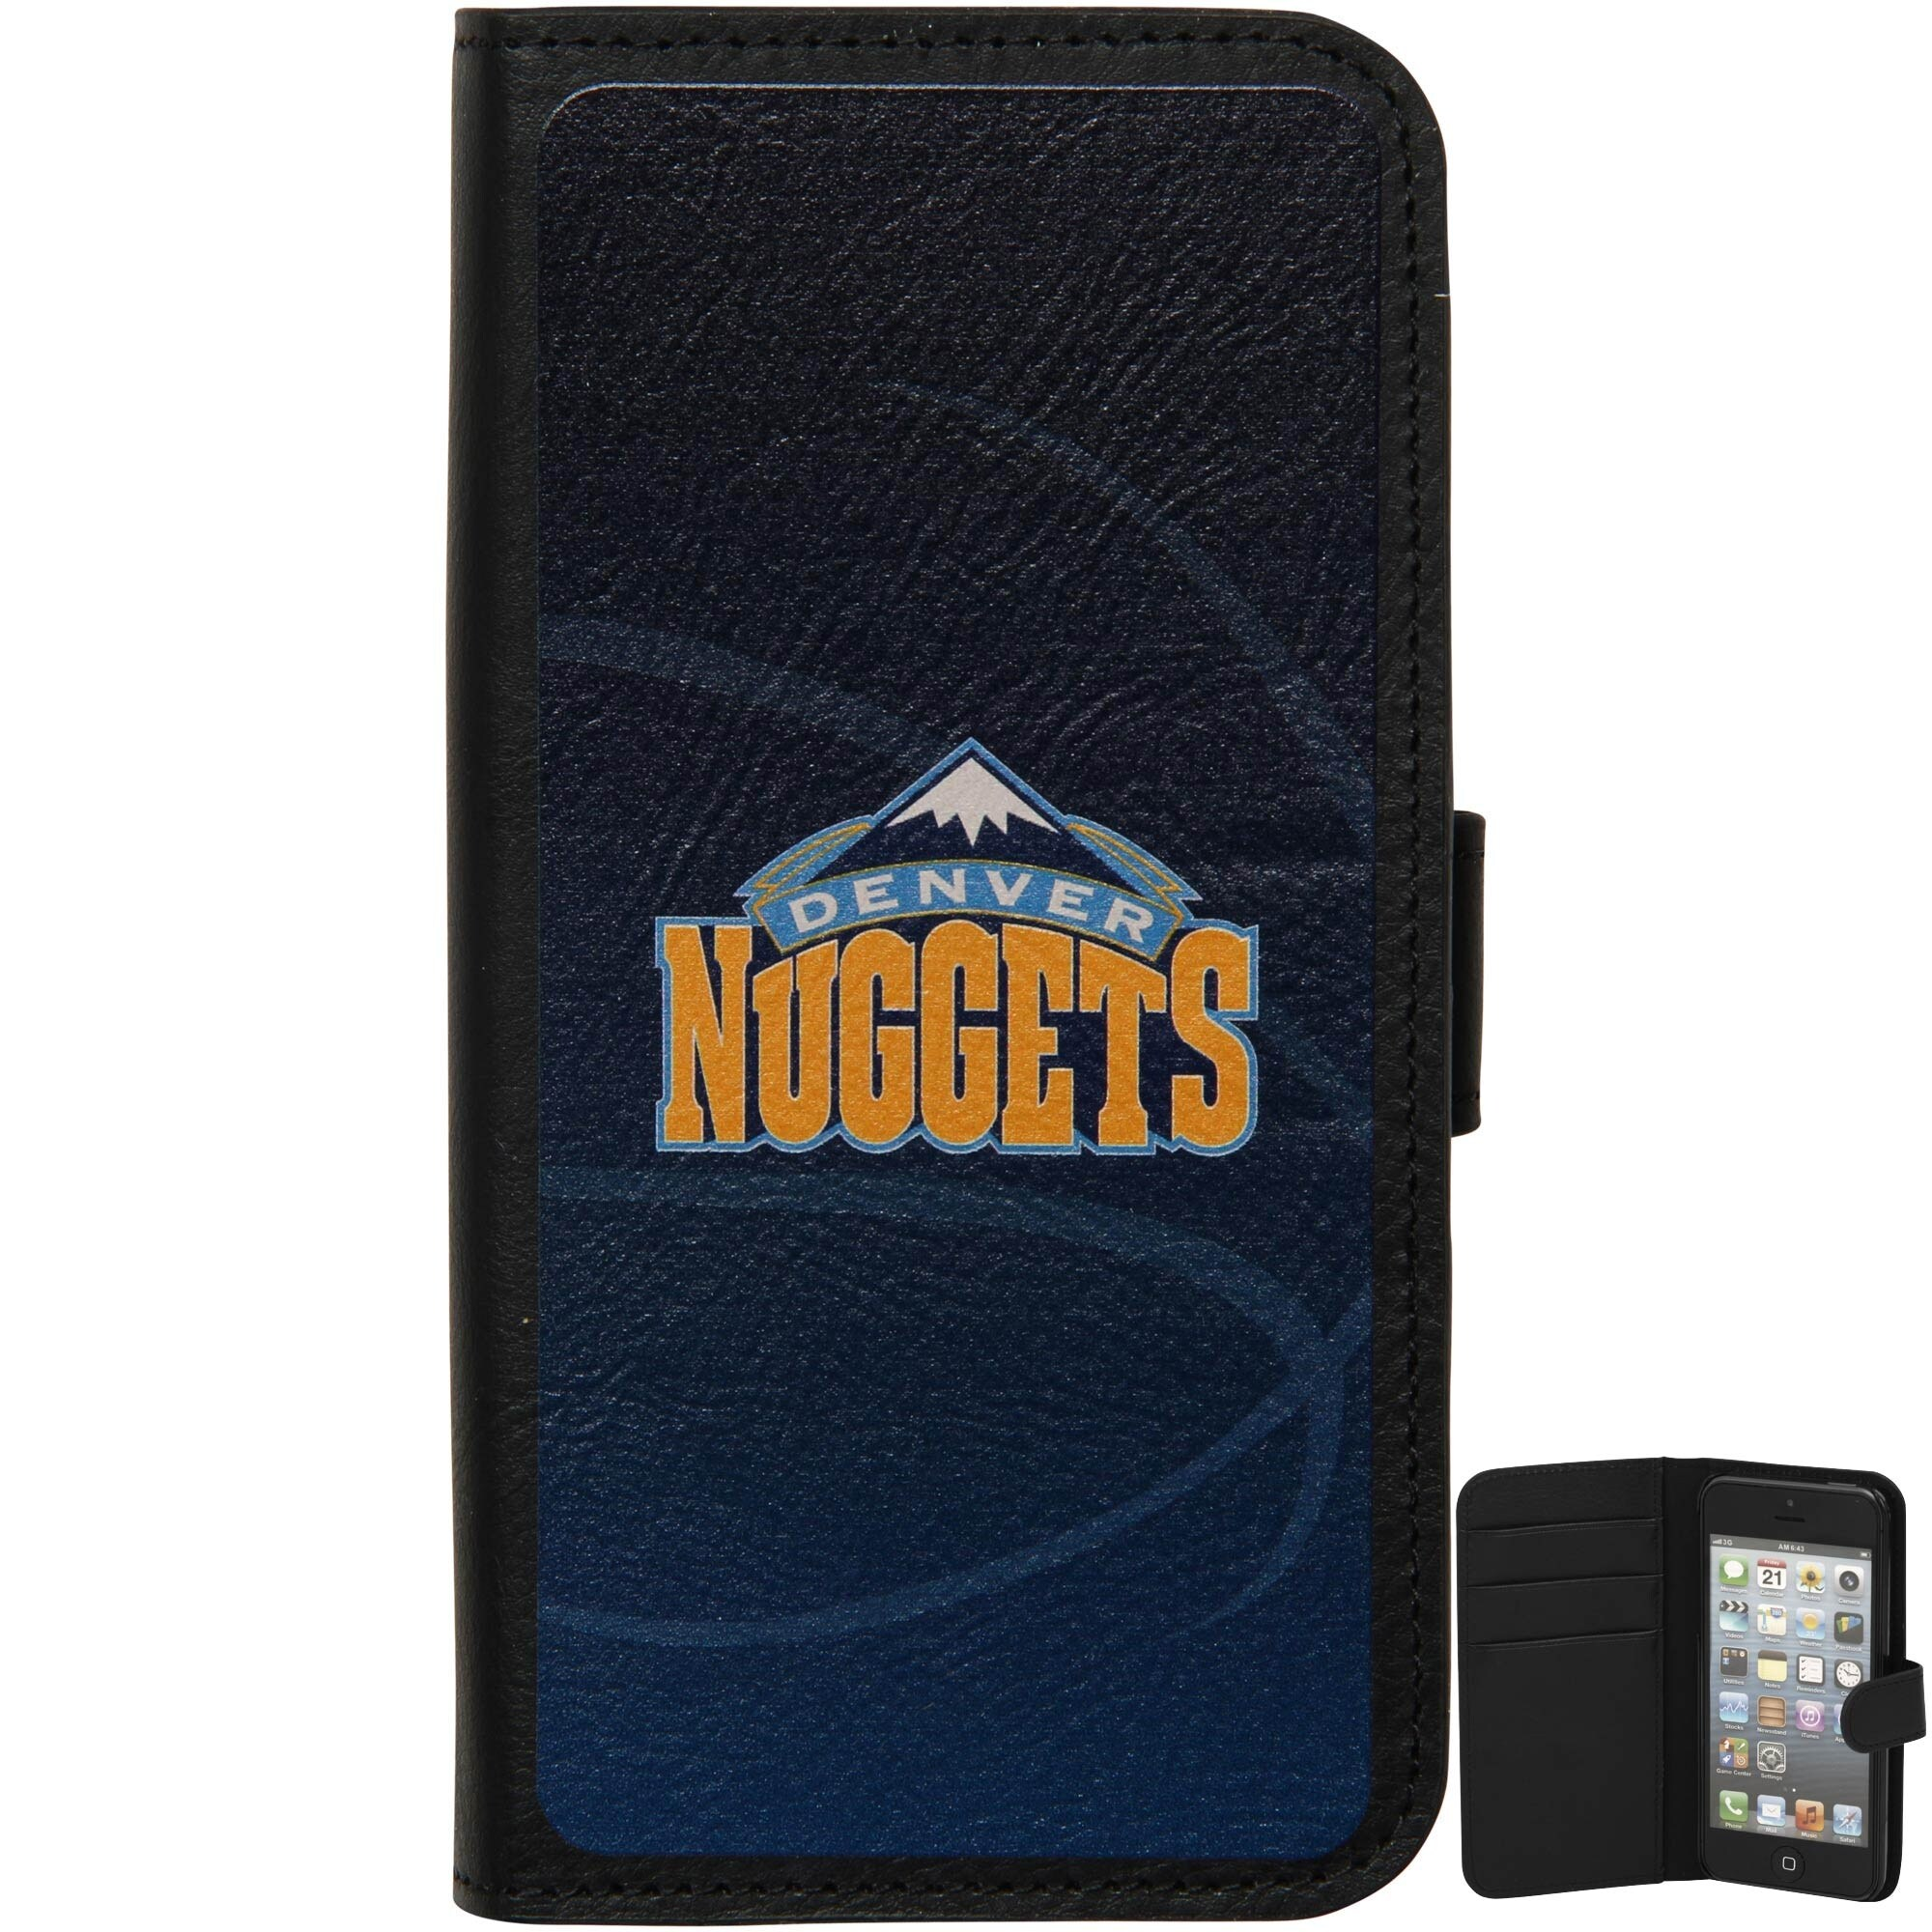 Denver Nuggets Basketball iPhone 5 Wallet - Black